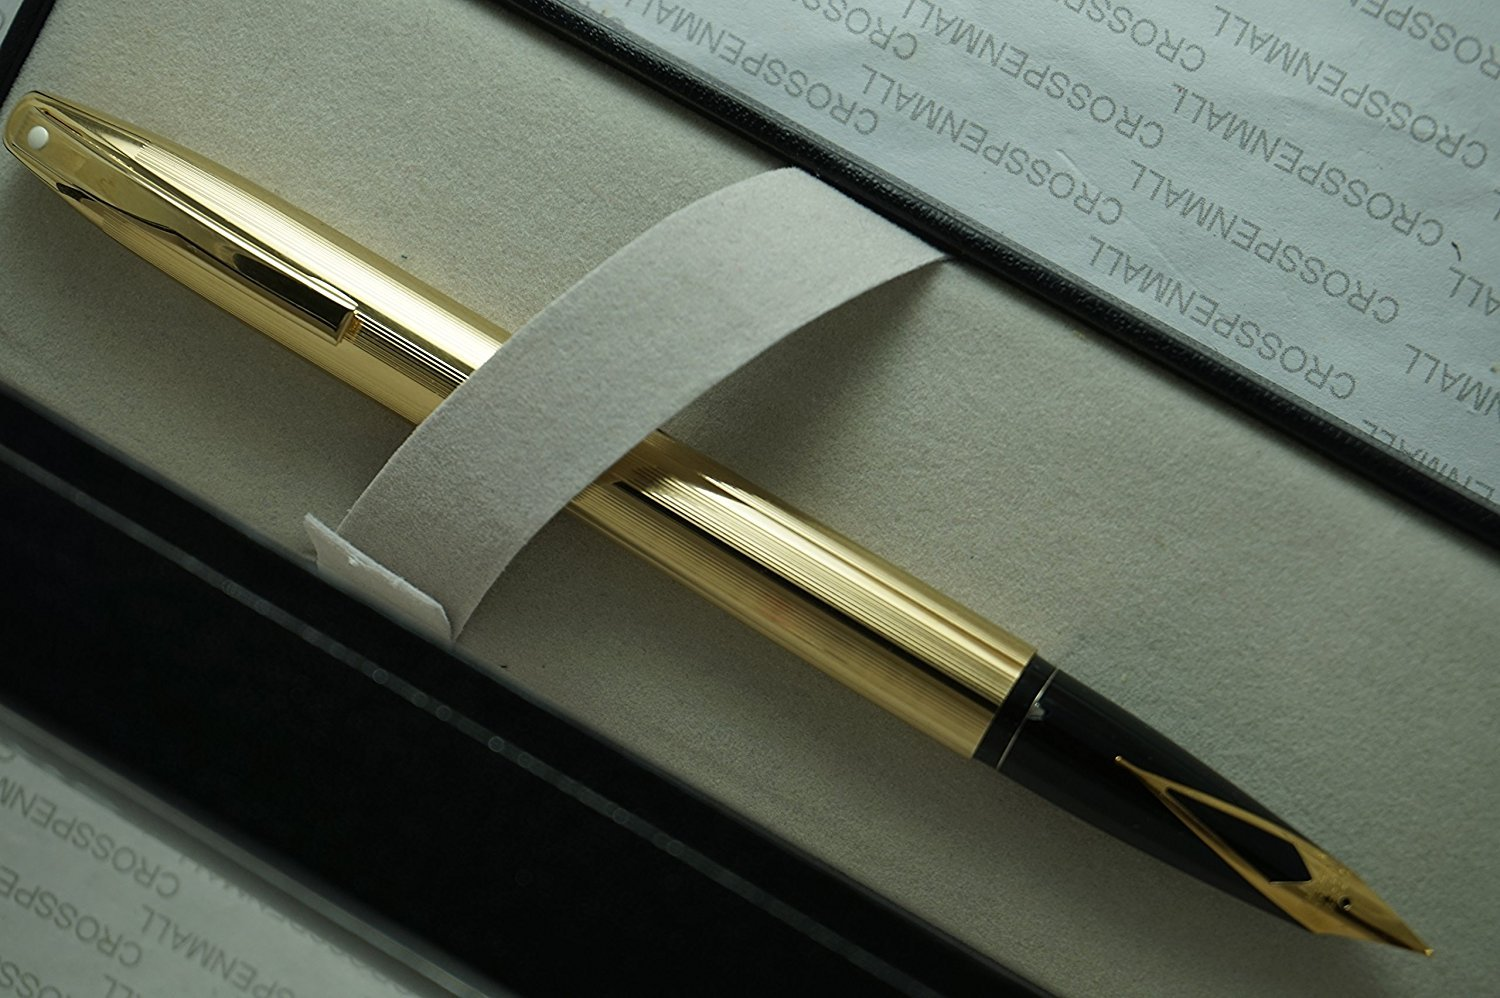 Made in the USA Cross Sheaffer triumph imperial 23KT Gold Fine nib Fountain Pen with 23KT Gold barrel and appointments -Fine nib